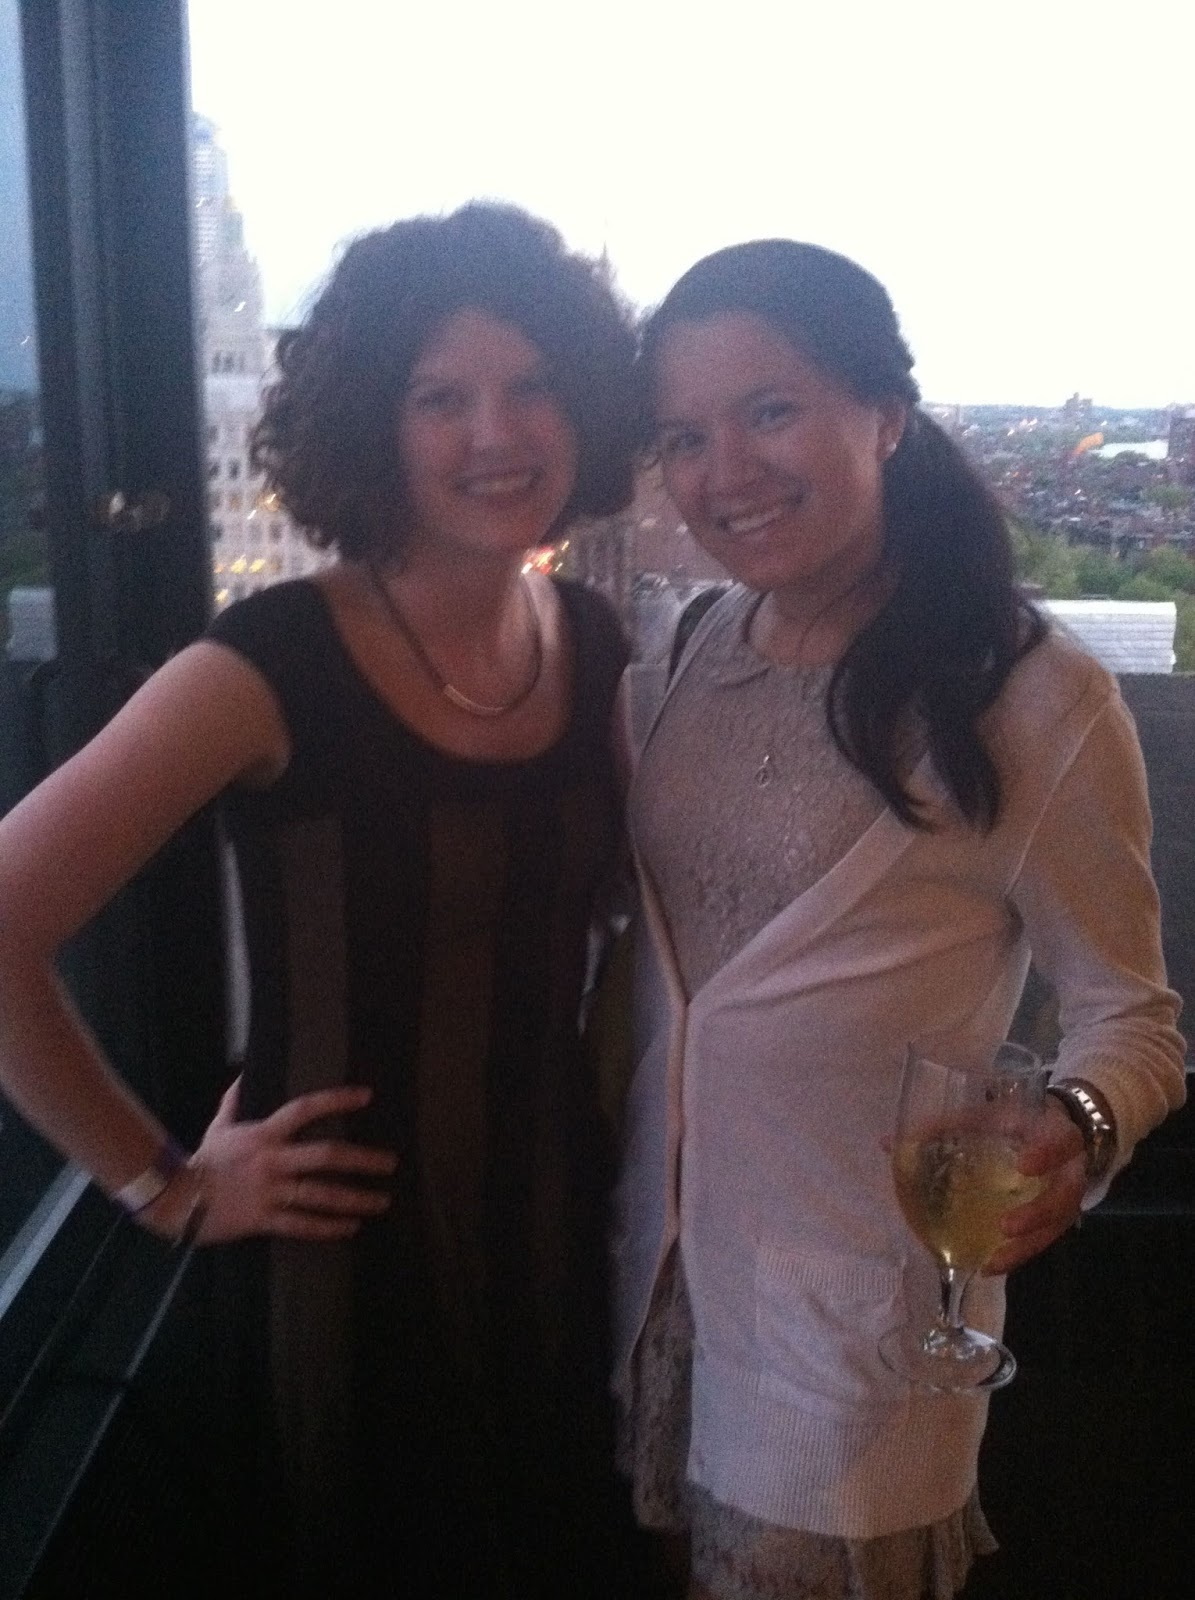 Twice on Top of the World on a Tuesday - Taj Hotel Boston | Pennies & Paper Blog